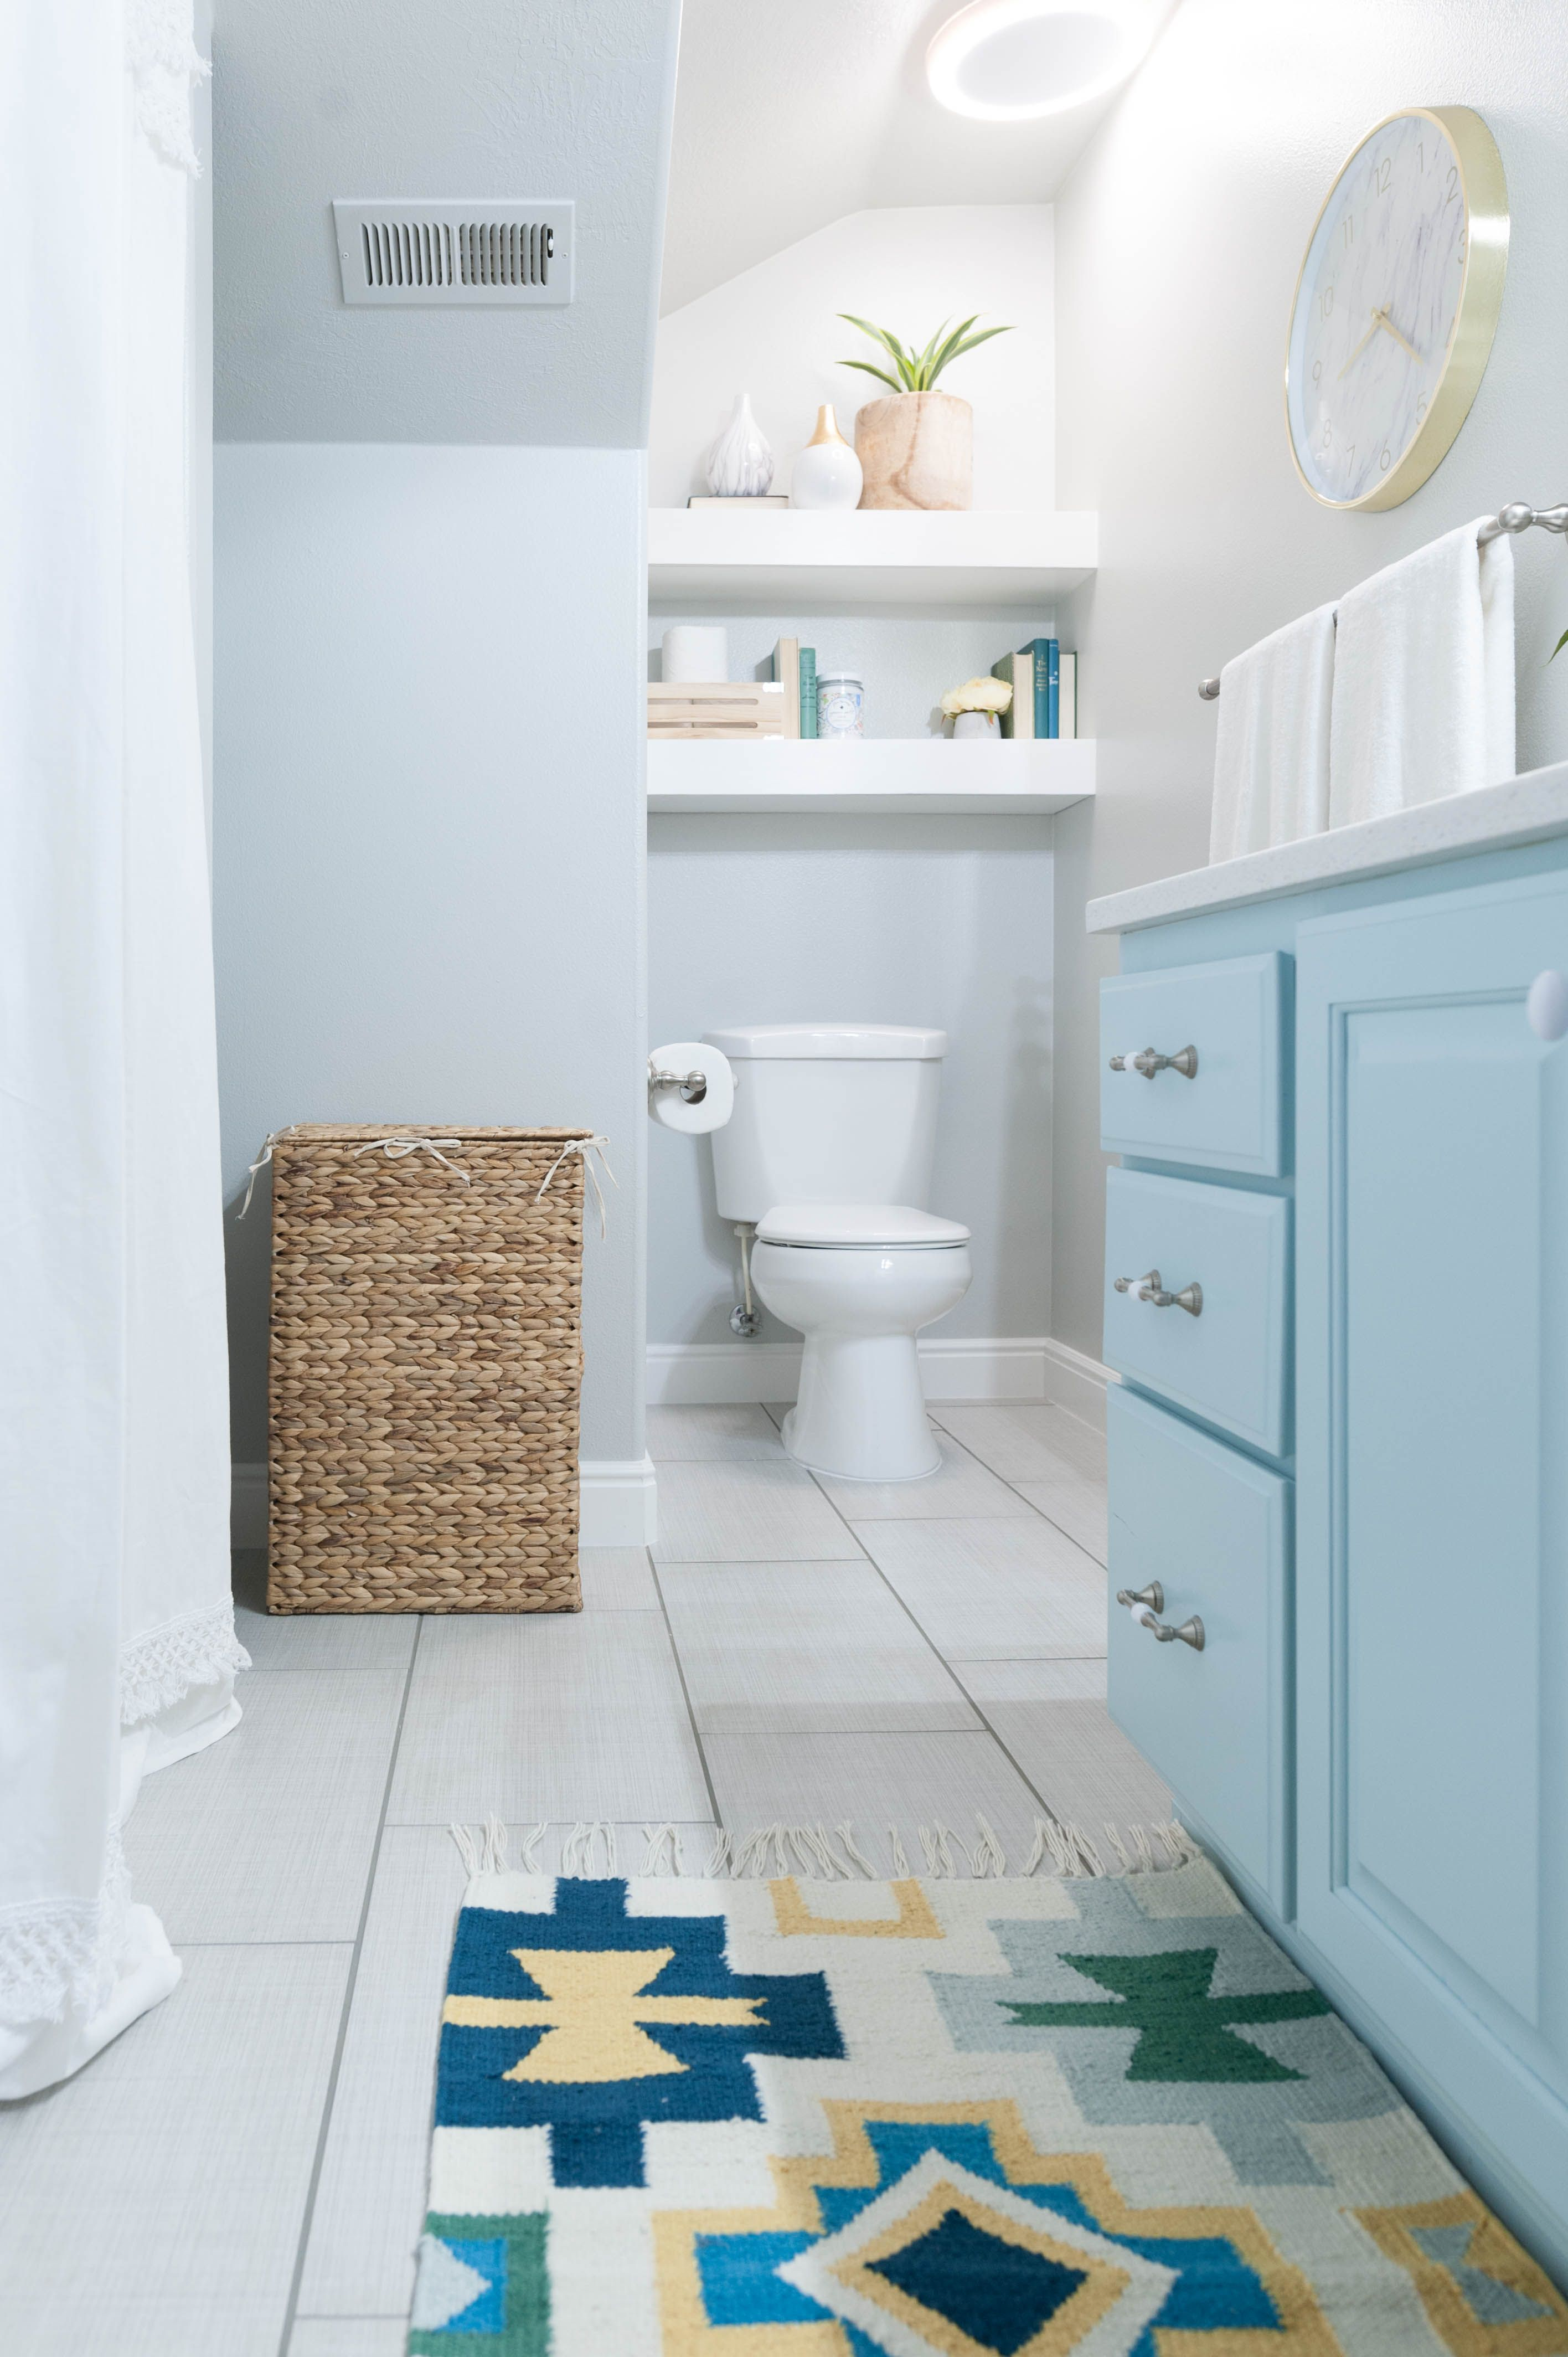 Kidsu0027 Bathroom Remodel With Pops Of Light Turquoise, Yellow, And Green